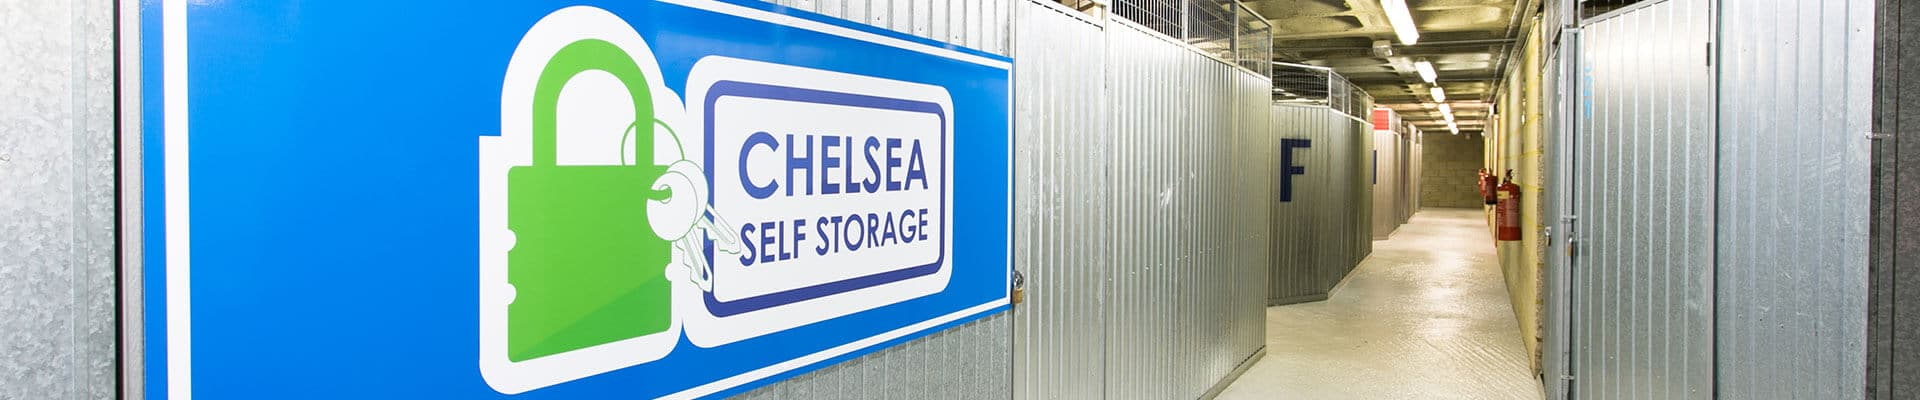 Self Storage And Storage Units | Chelsea Self Storage | London